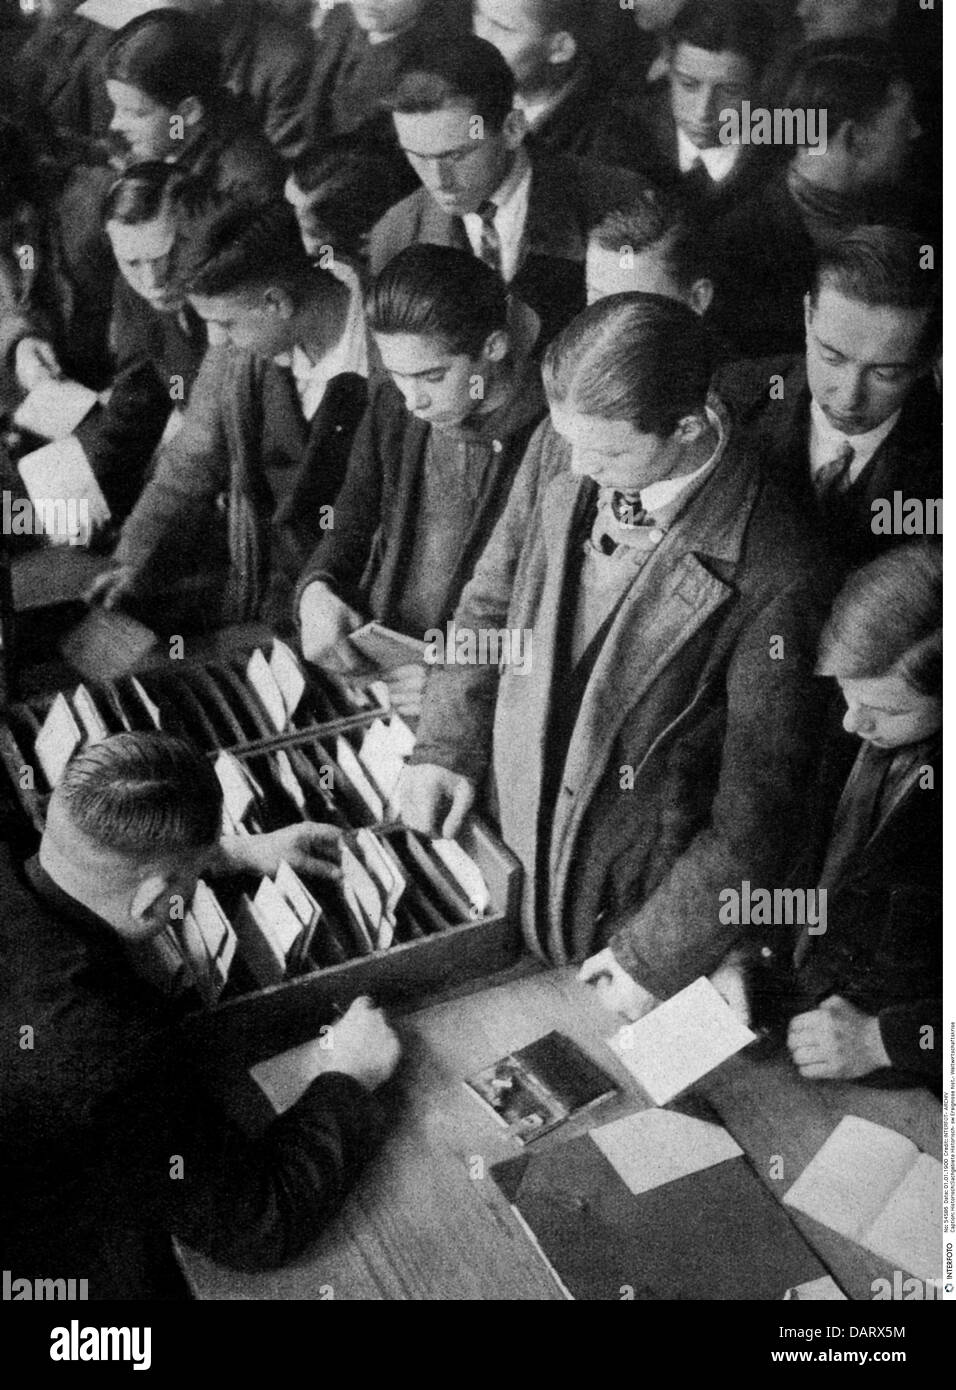 events, Great Depression 1929 - 1933, unemployment, young men in job centre, after photograph, circa 1930, historic, - Stock Image